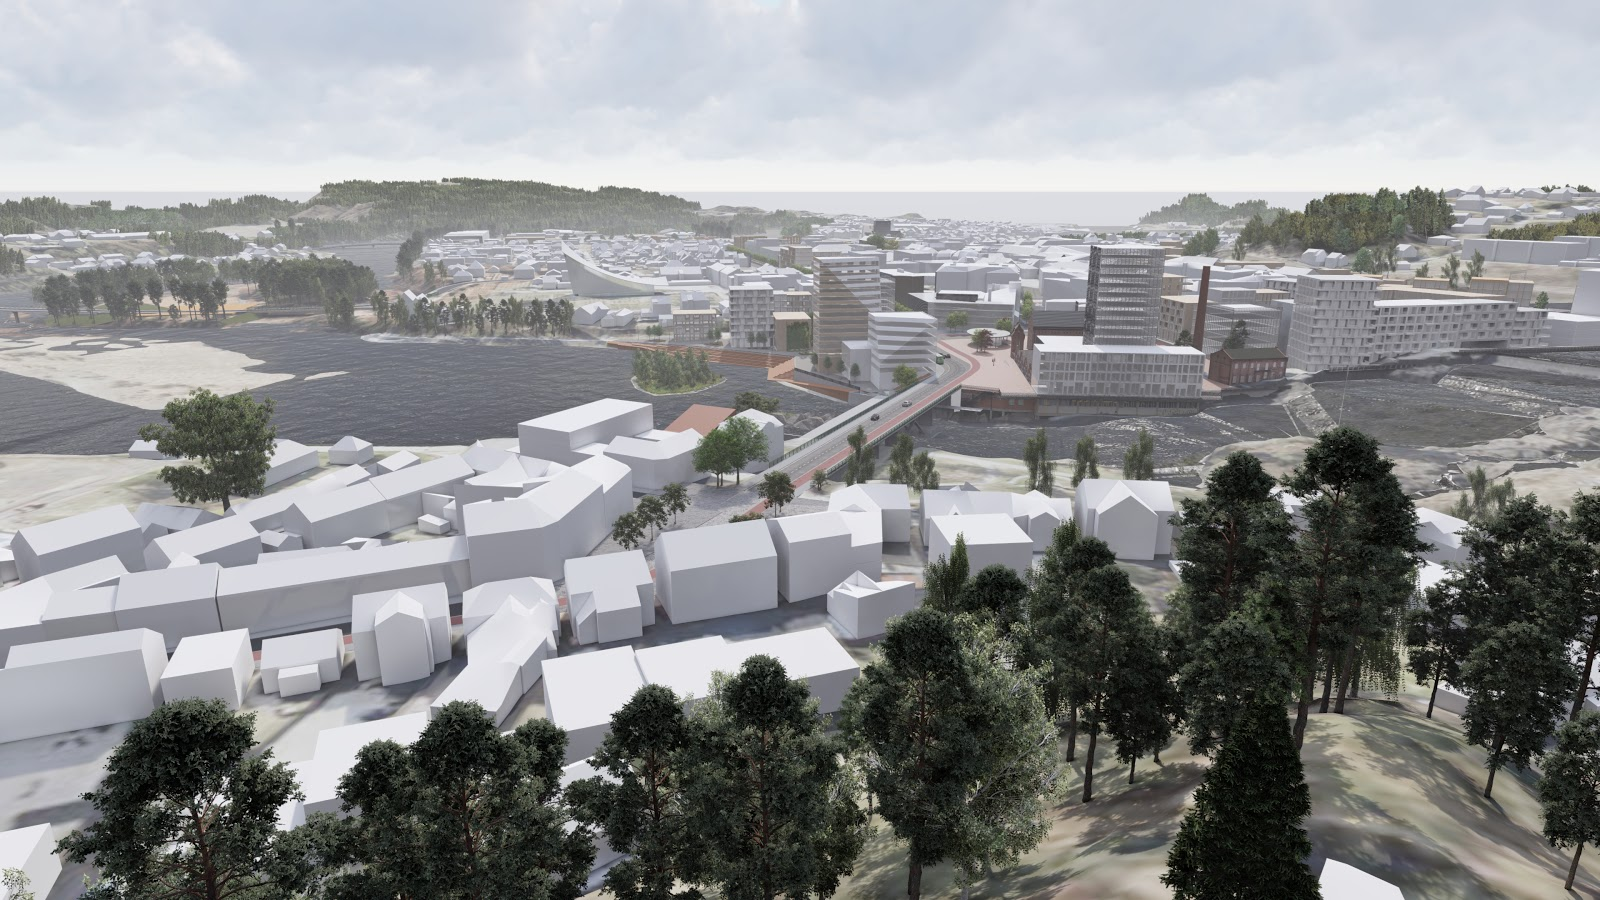 SketchUp city model of Hønefoss viewed in Lumion. Rambøll and DRMA architects.